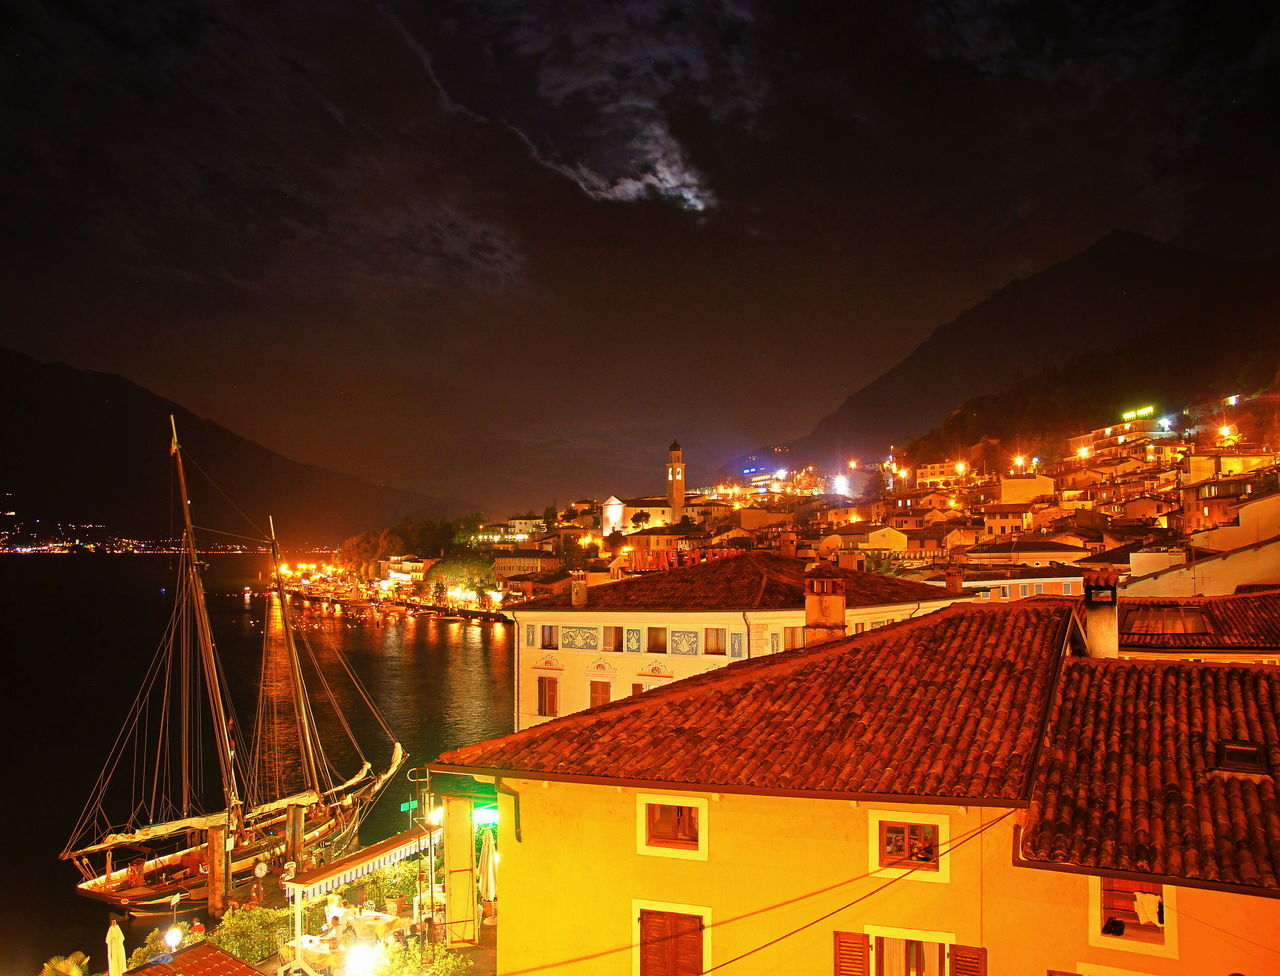 Above The Roof Above The Roofs Architecture Building Exterior Built Structure City Cityscape Cloud - Sky Clouds And Sky EyeEmNewHere Illuminated Lago Di Garda Lake Lake Garda Lights Limone Sul Garda Night No People Outdoors Sailboat Sky Windmade